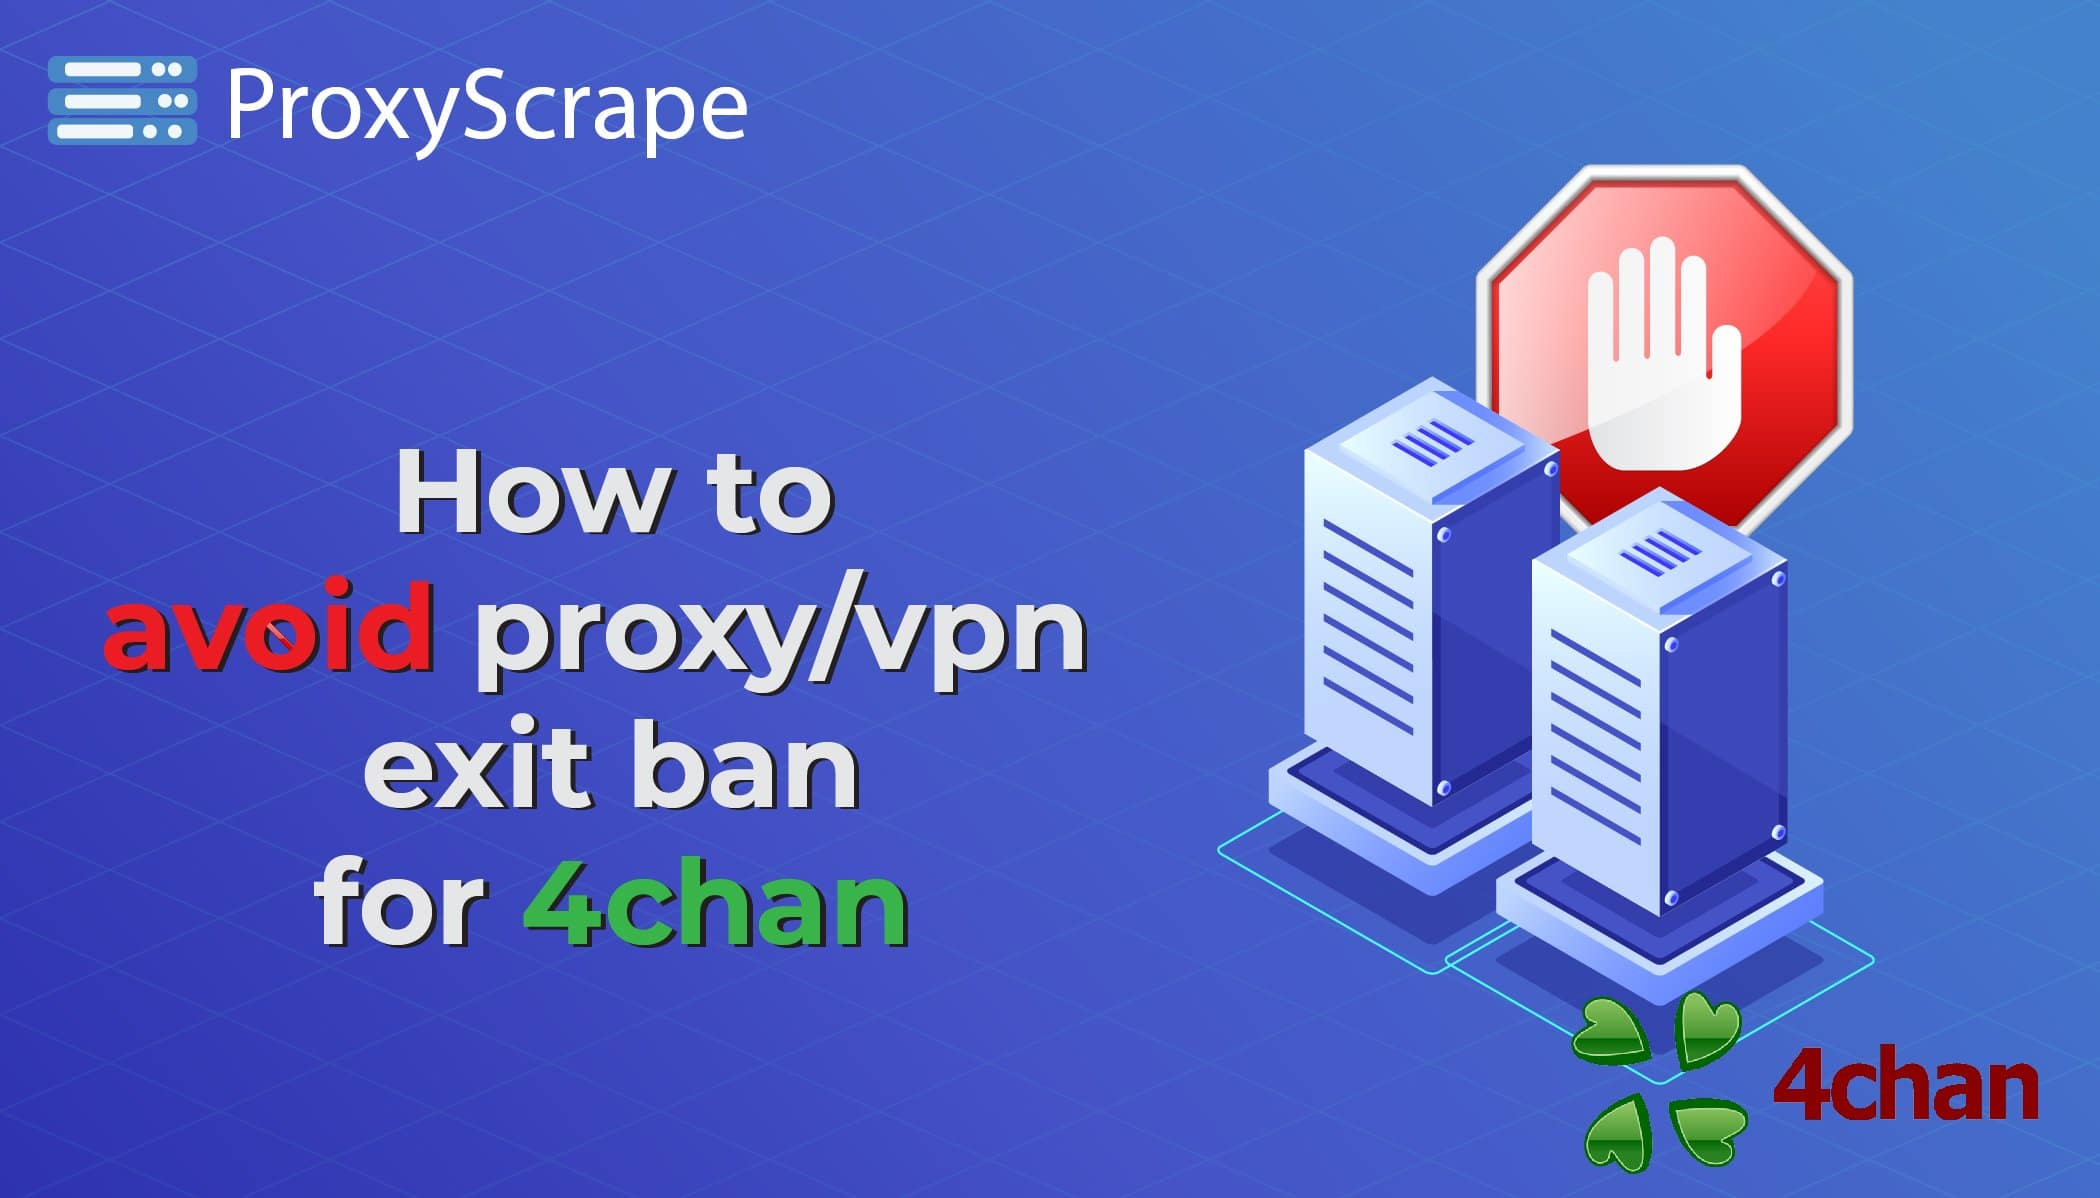 proxy/vpn exit ban for 4chan